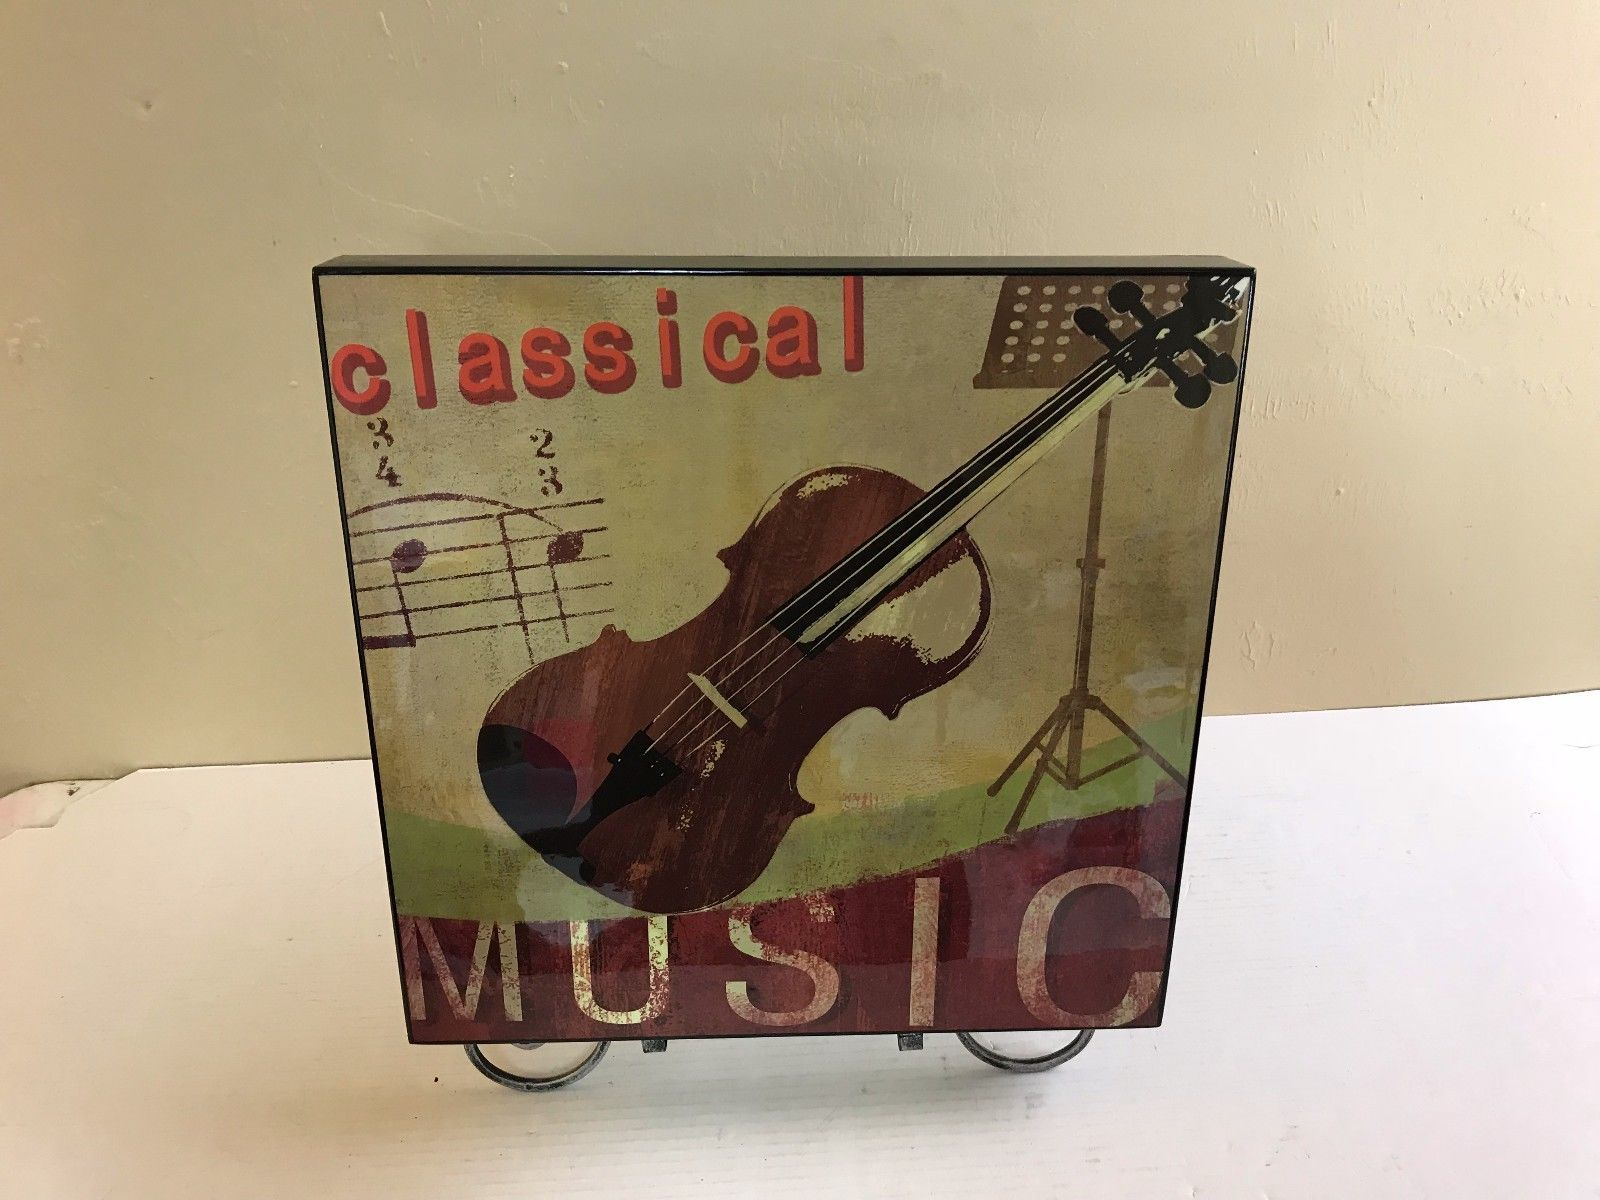 "CLASSICAL MUSIC LARGE WALL HANGING 15X15X1.5"" VIOLIN PRE-OWNED             #2701"